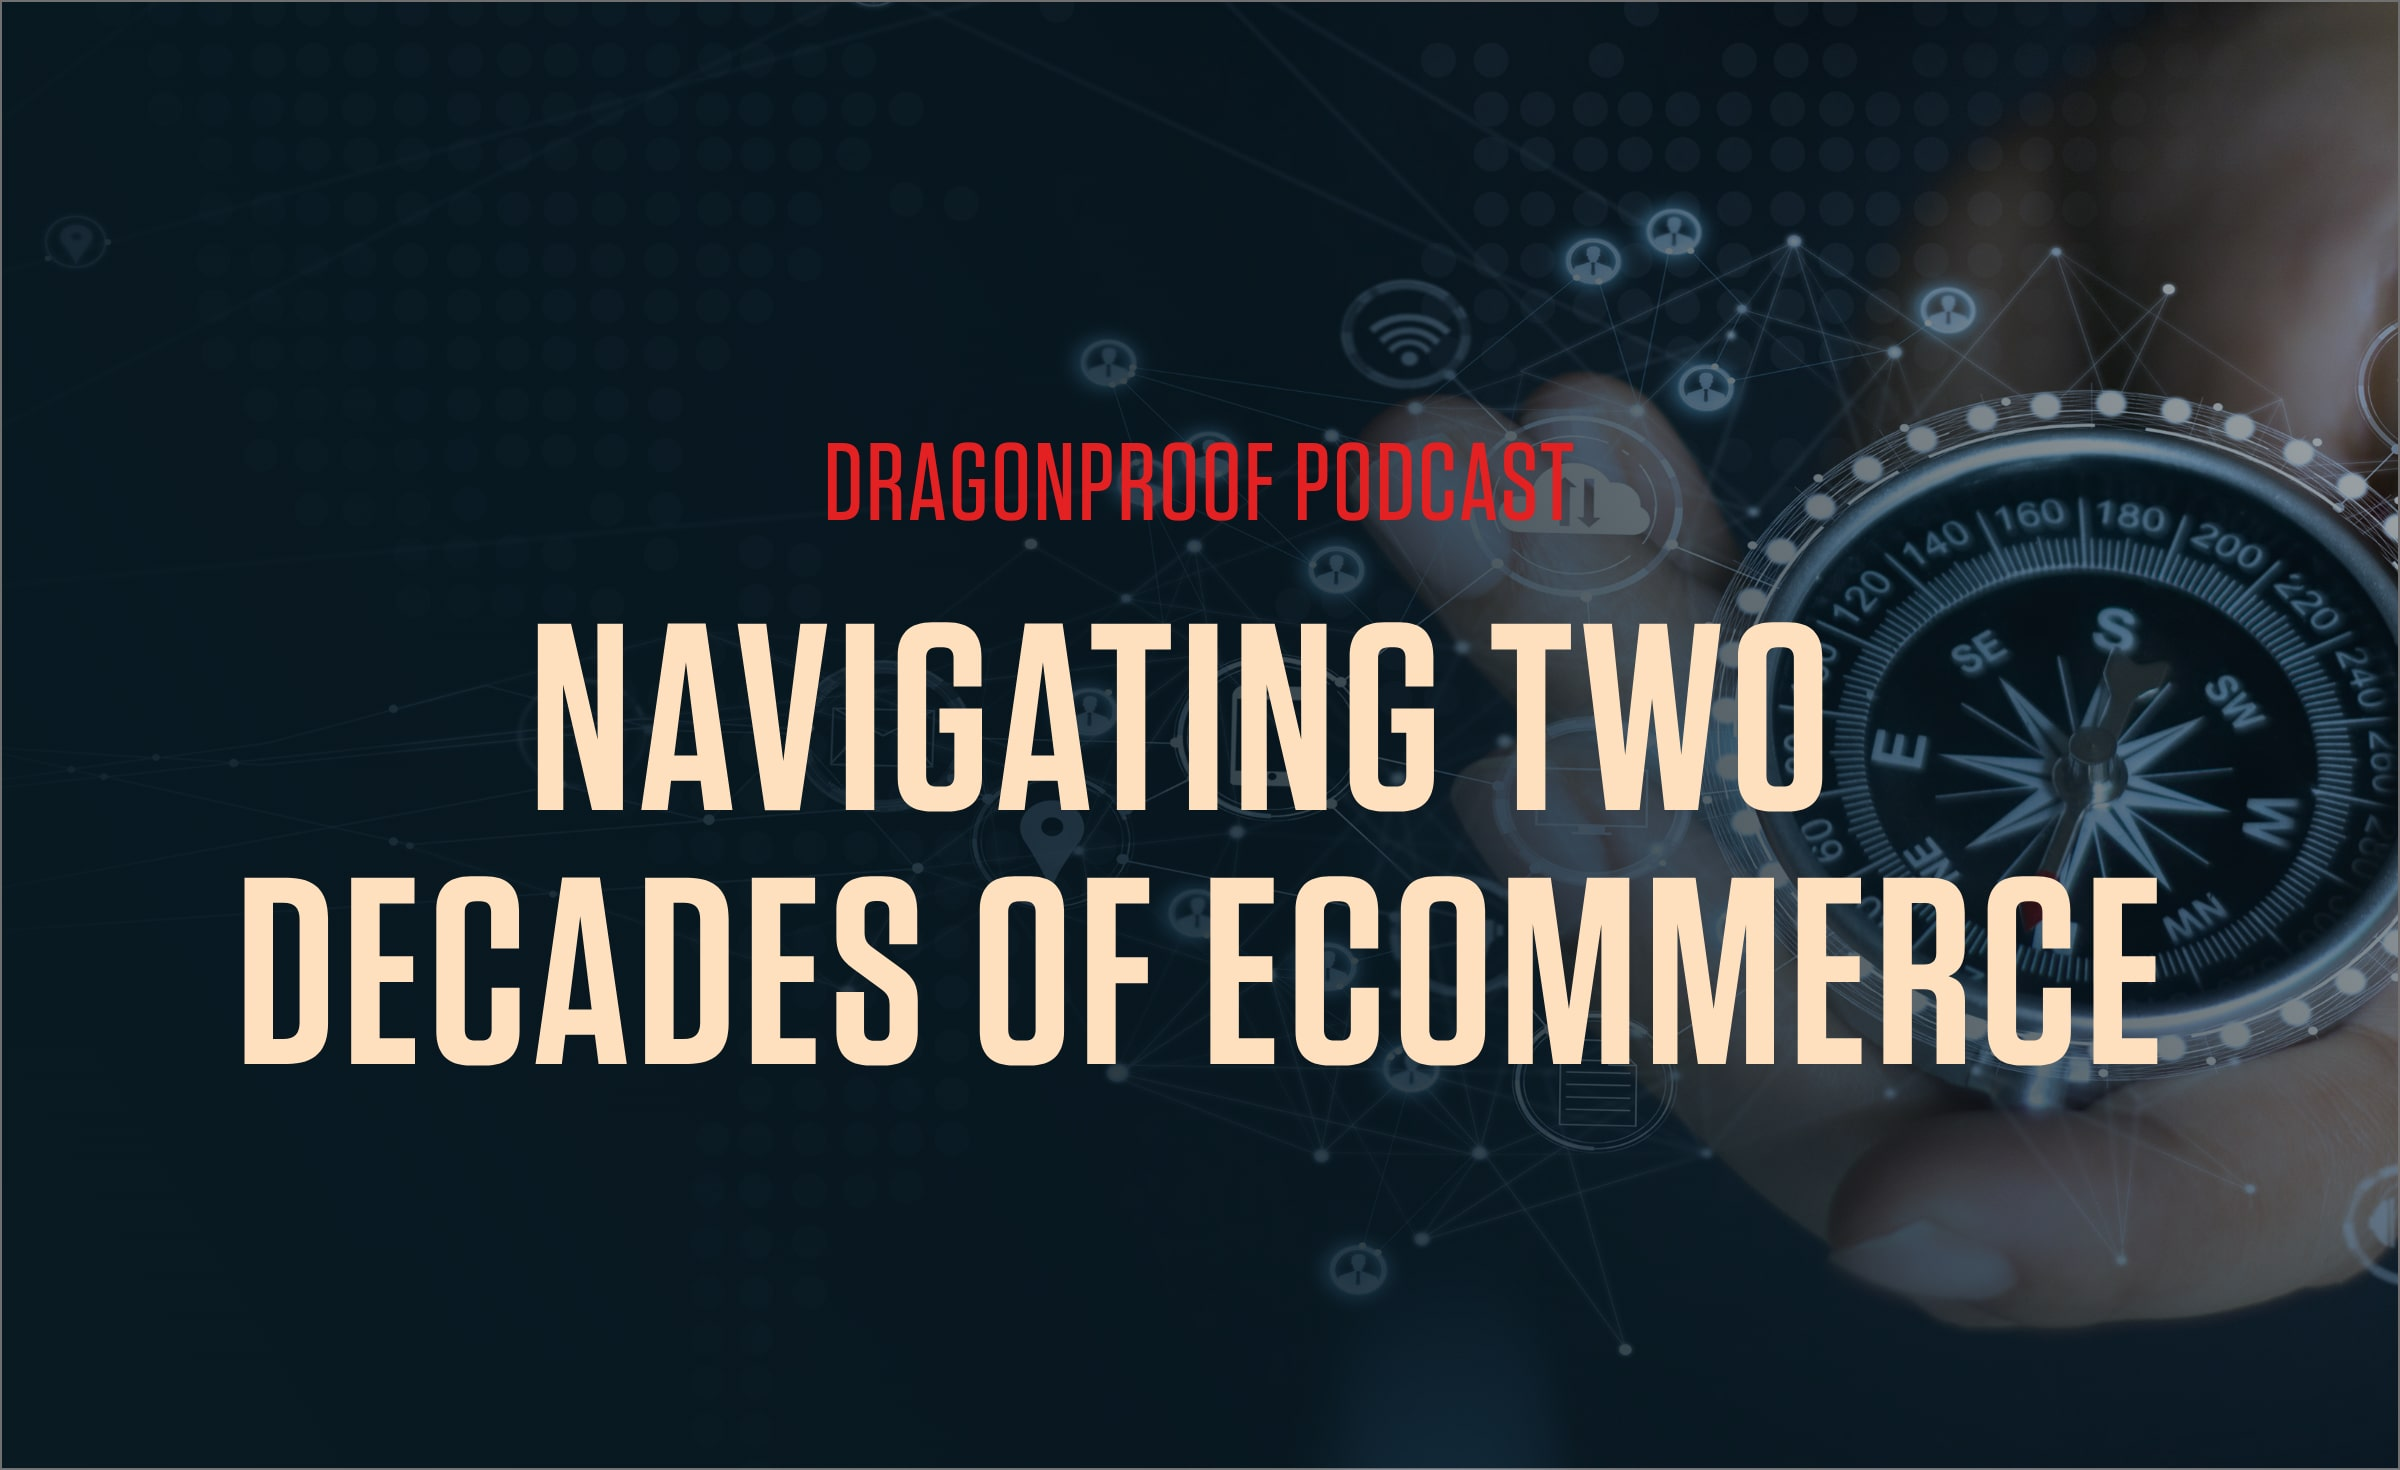 Dragonproof Podcast Title Card - Navigating Two Decades of Ecommerce